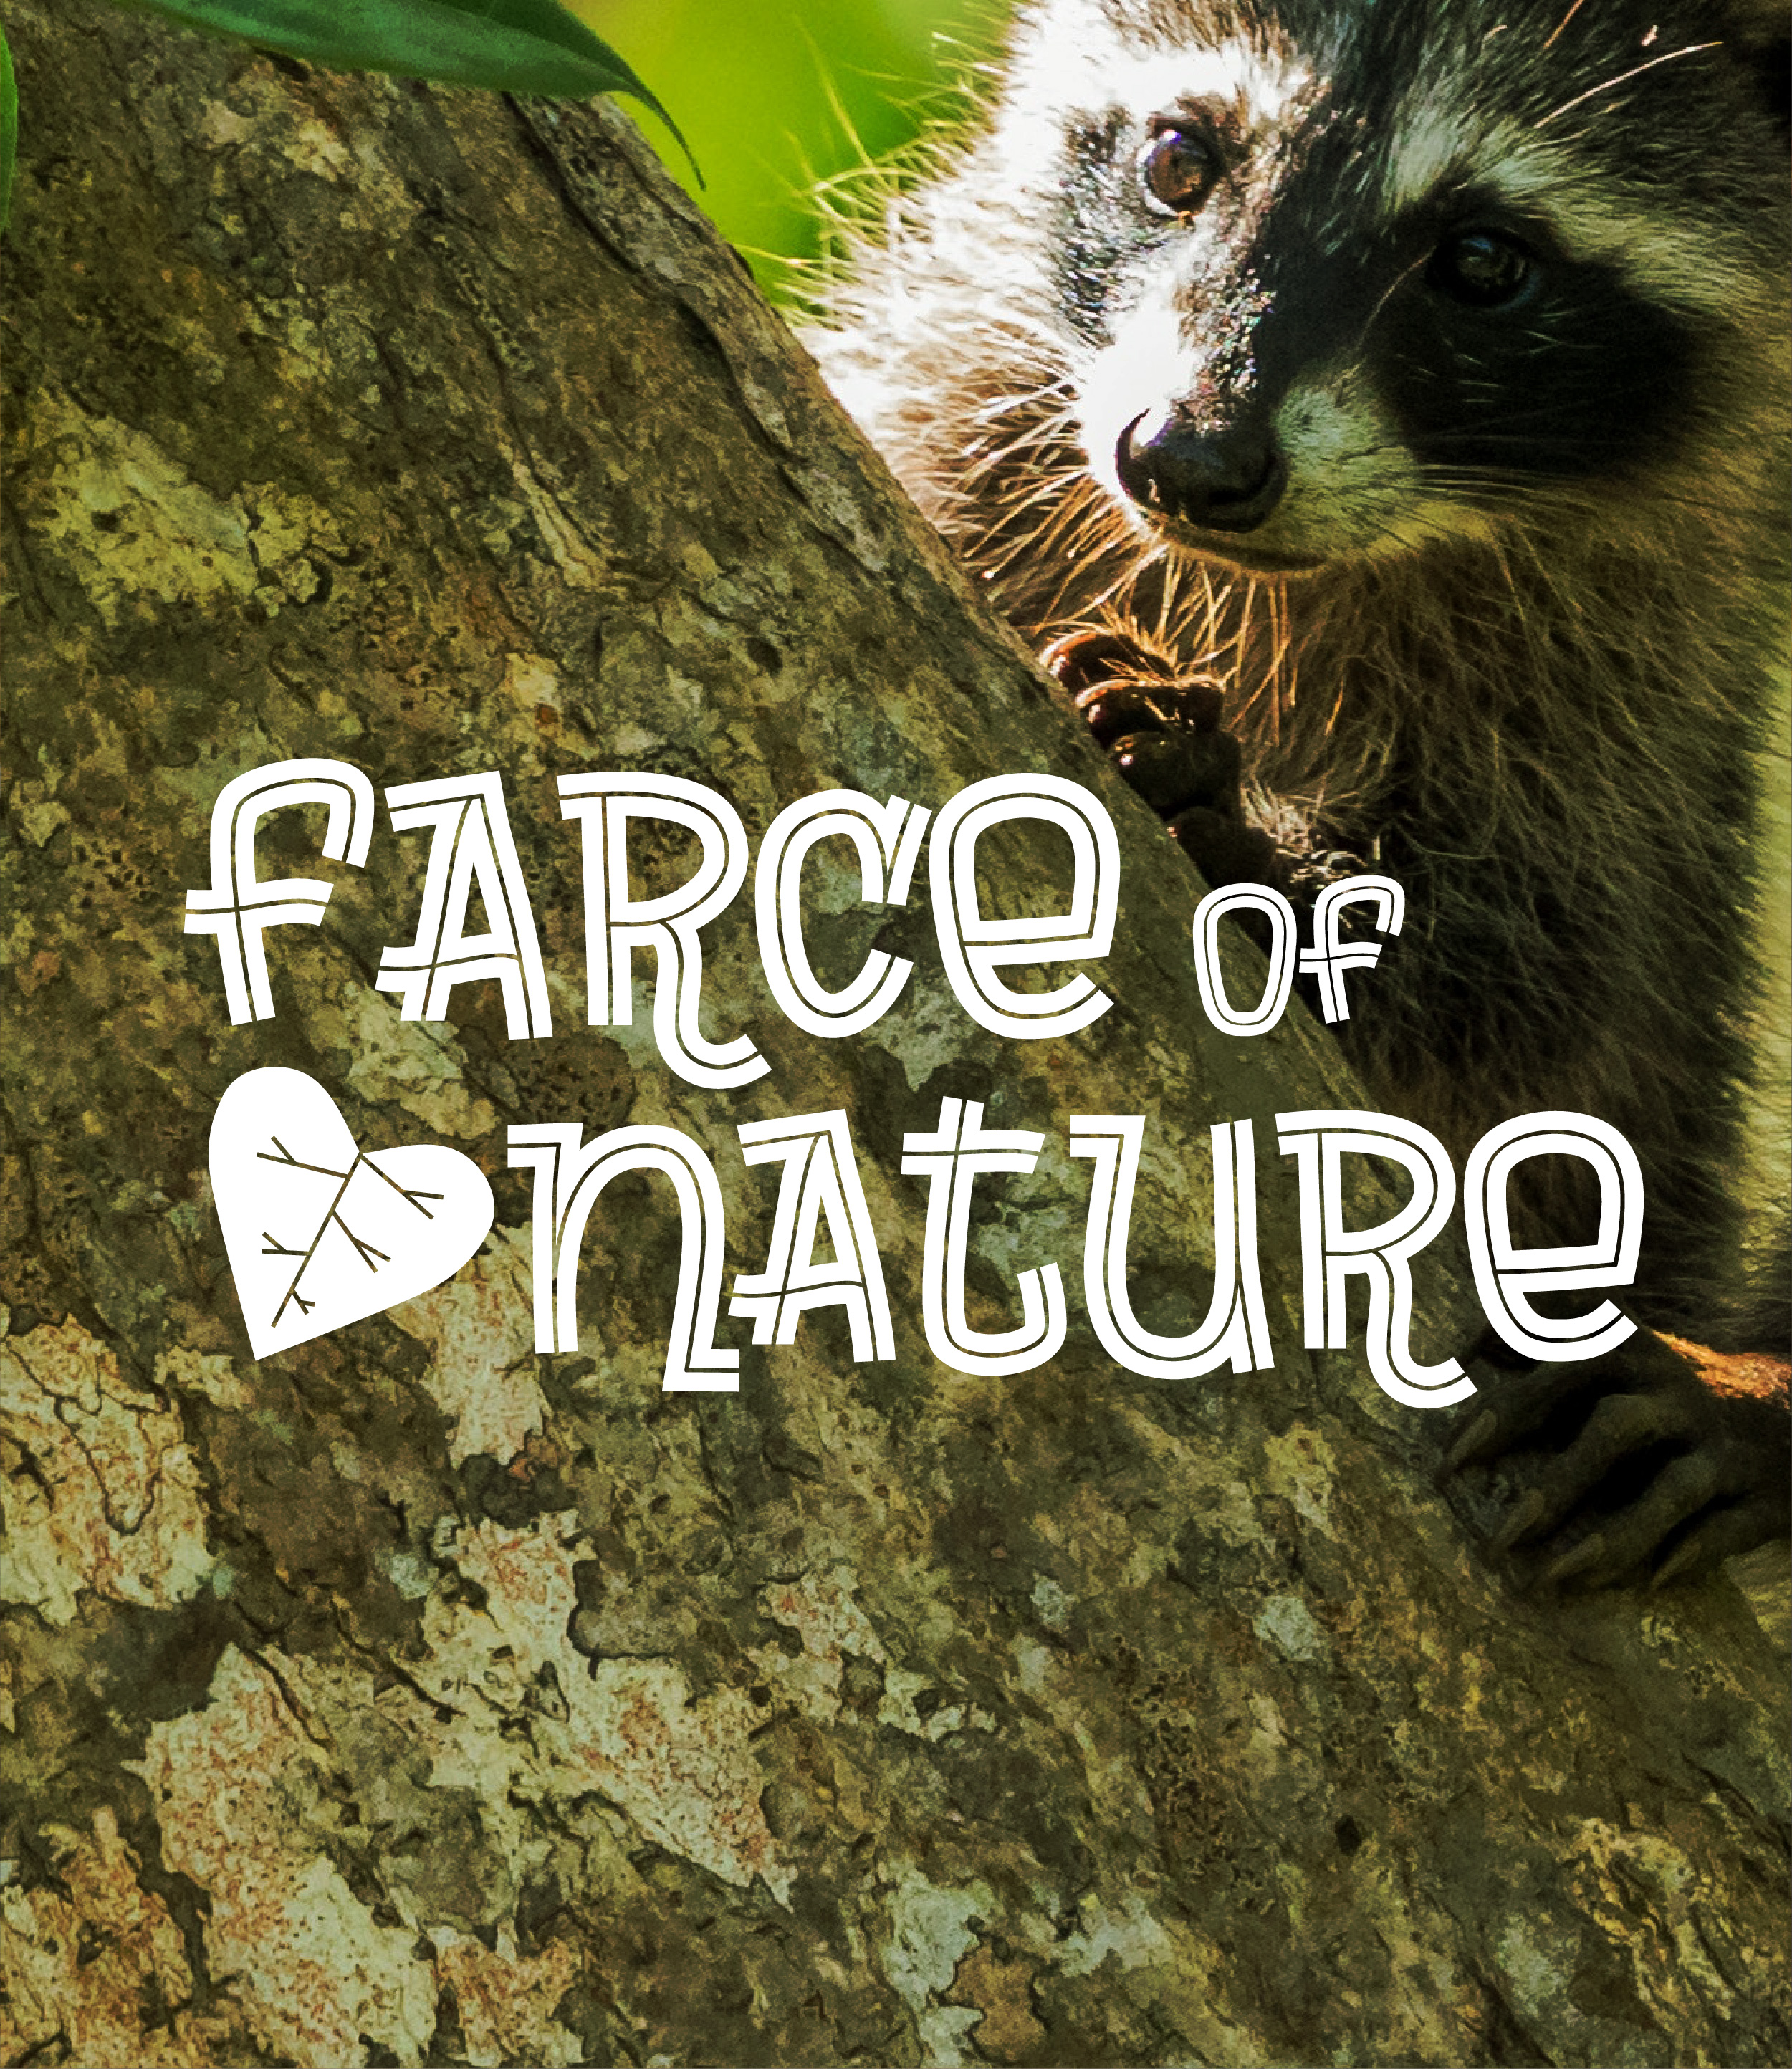 Farce of Nature